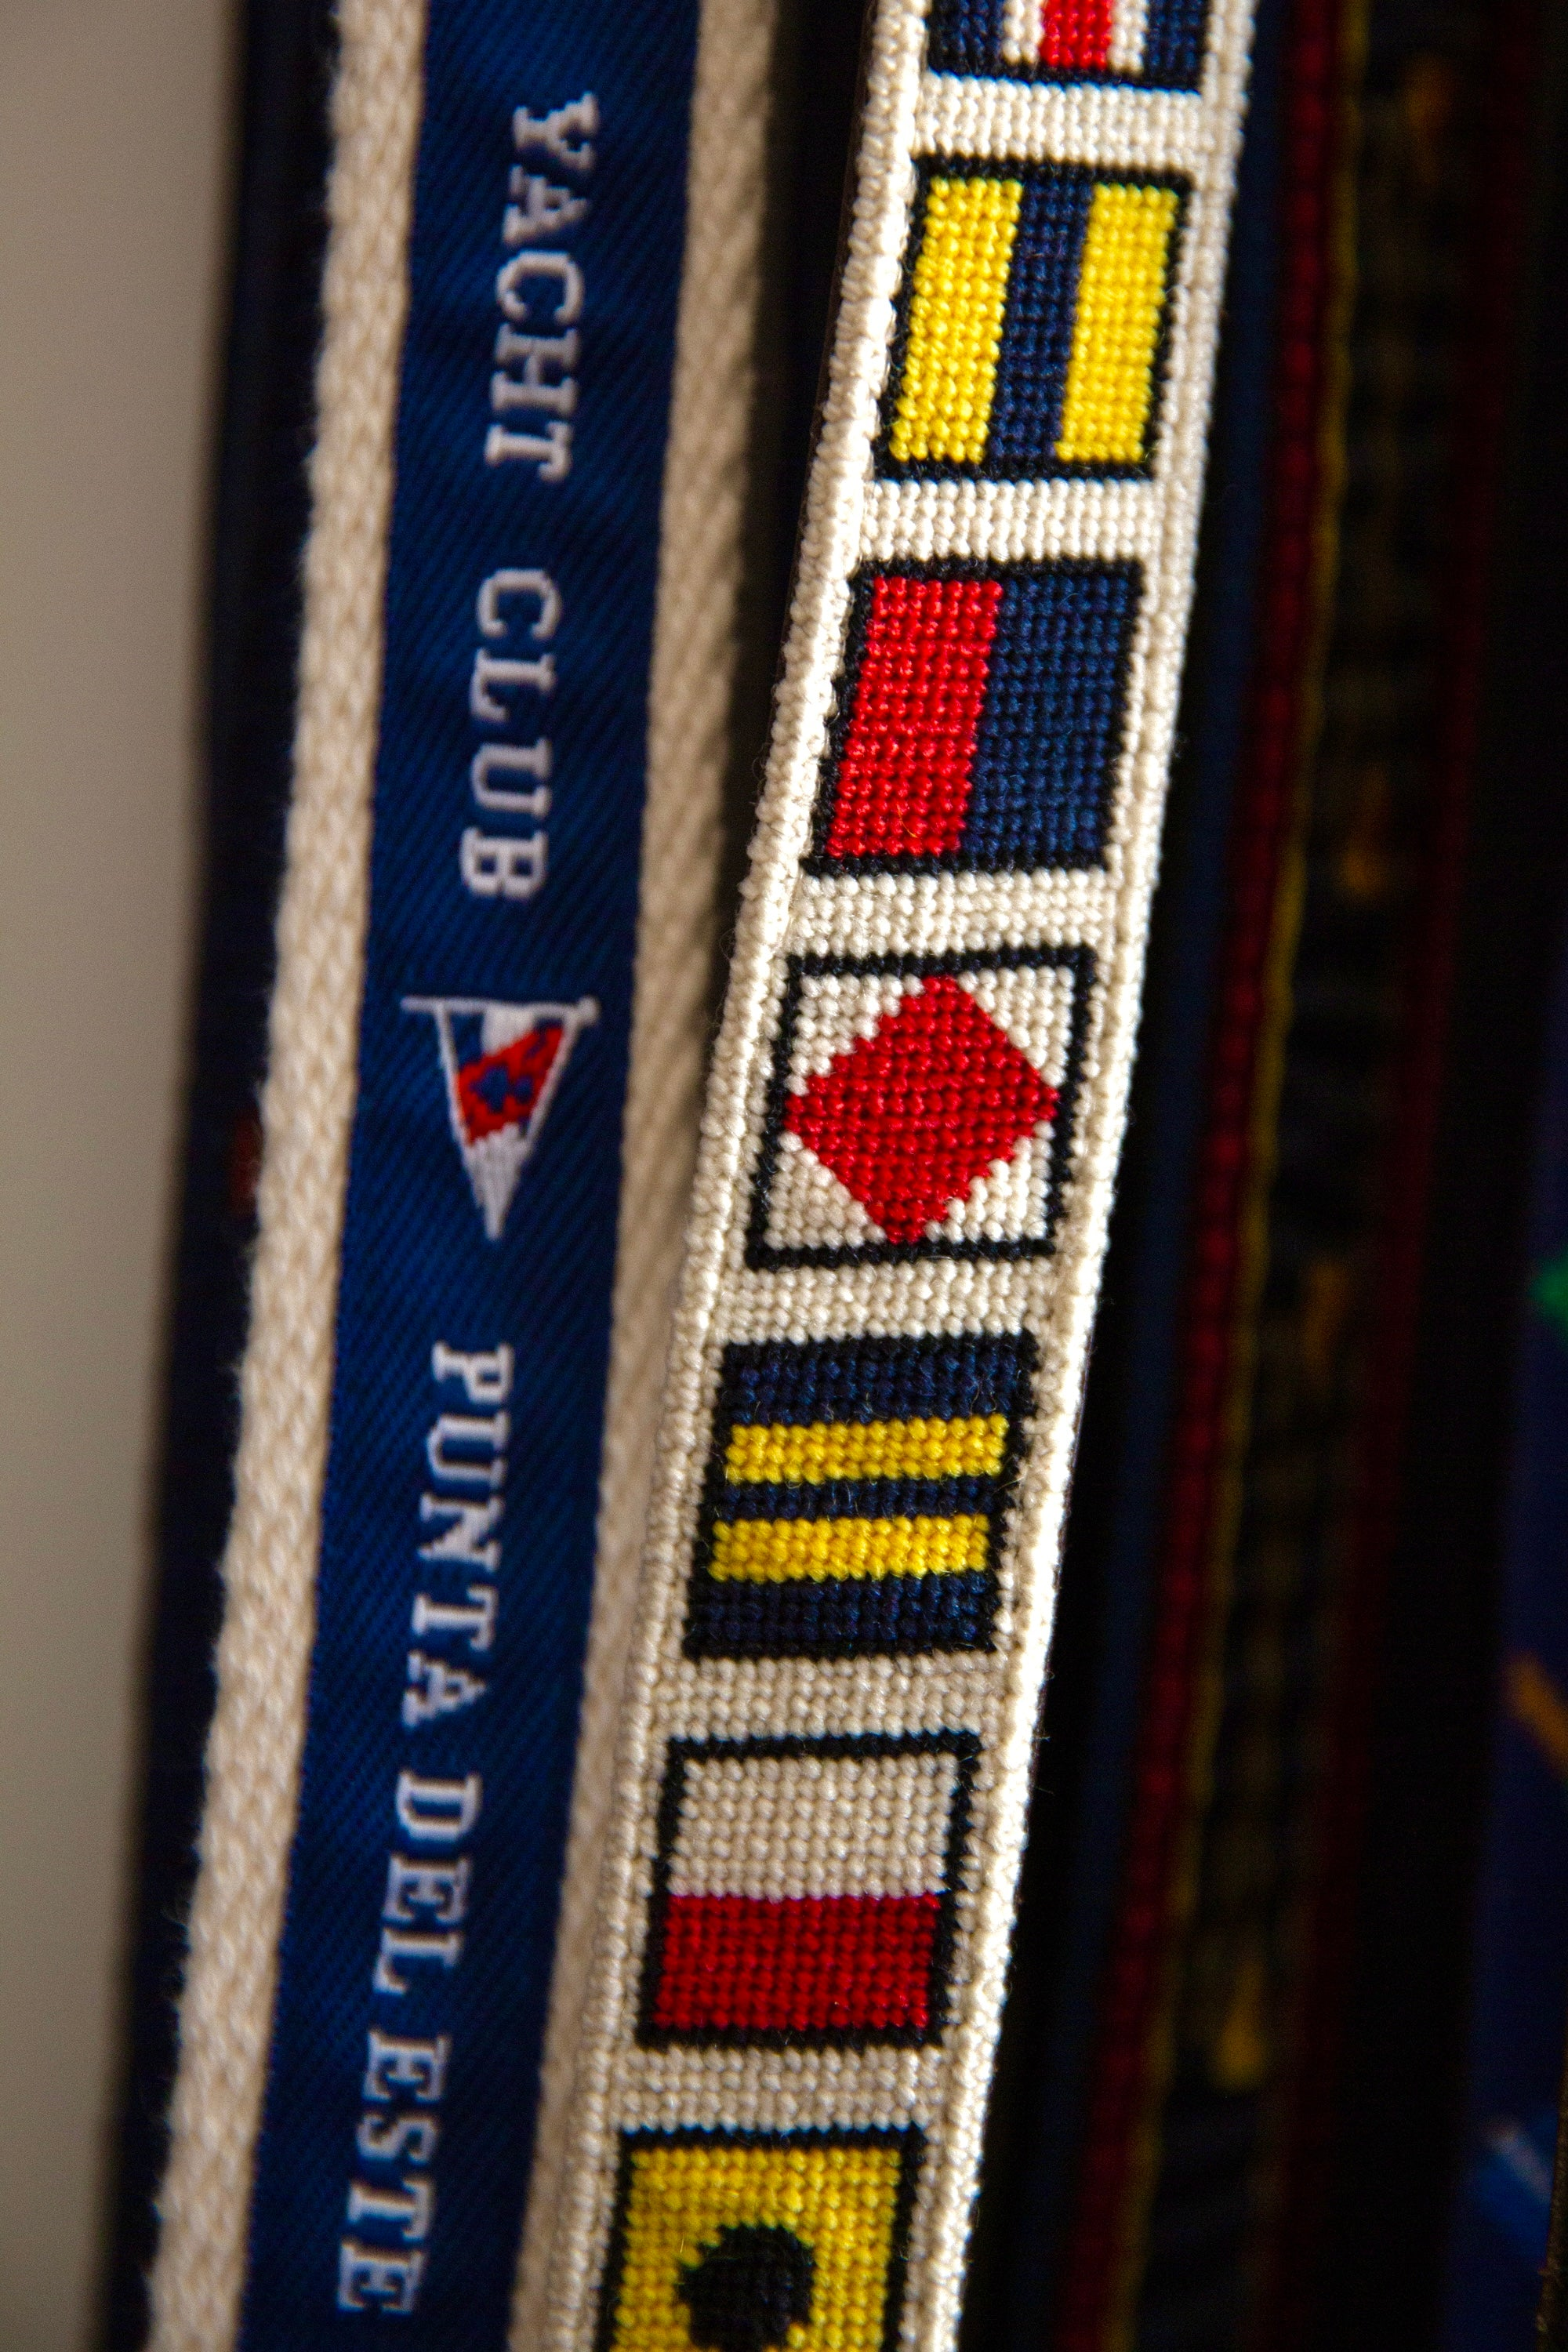 Close-up of a few different belts